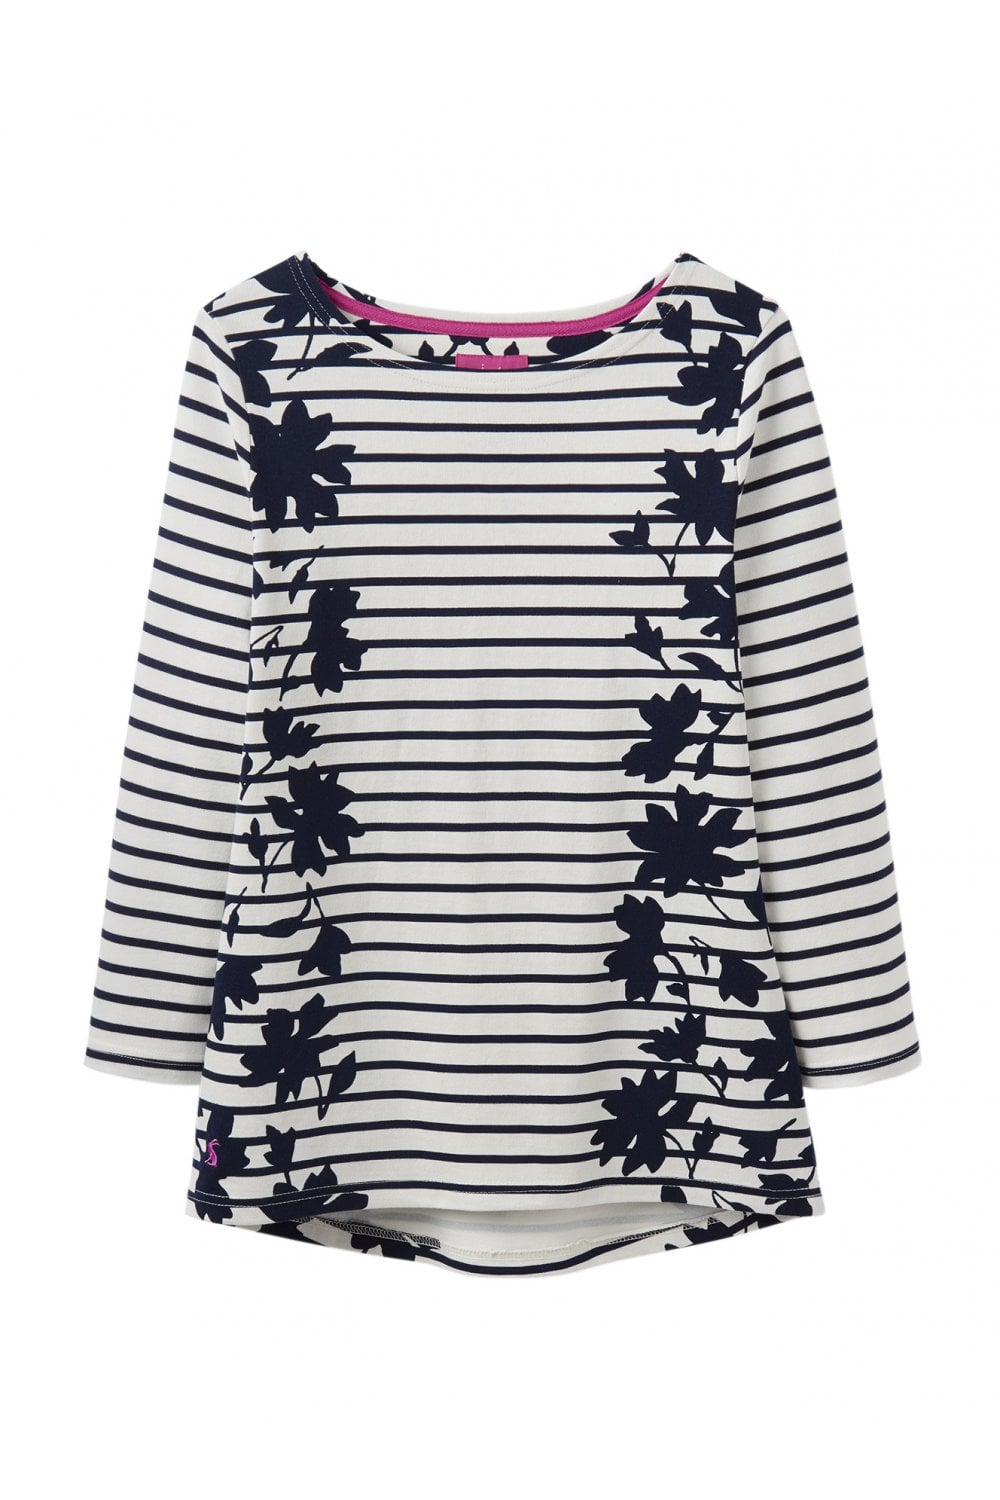 19f47a500be78e Joules Womens Harbour Jersey Top - Navy Border Floral - Womenswear ...